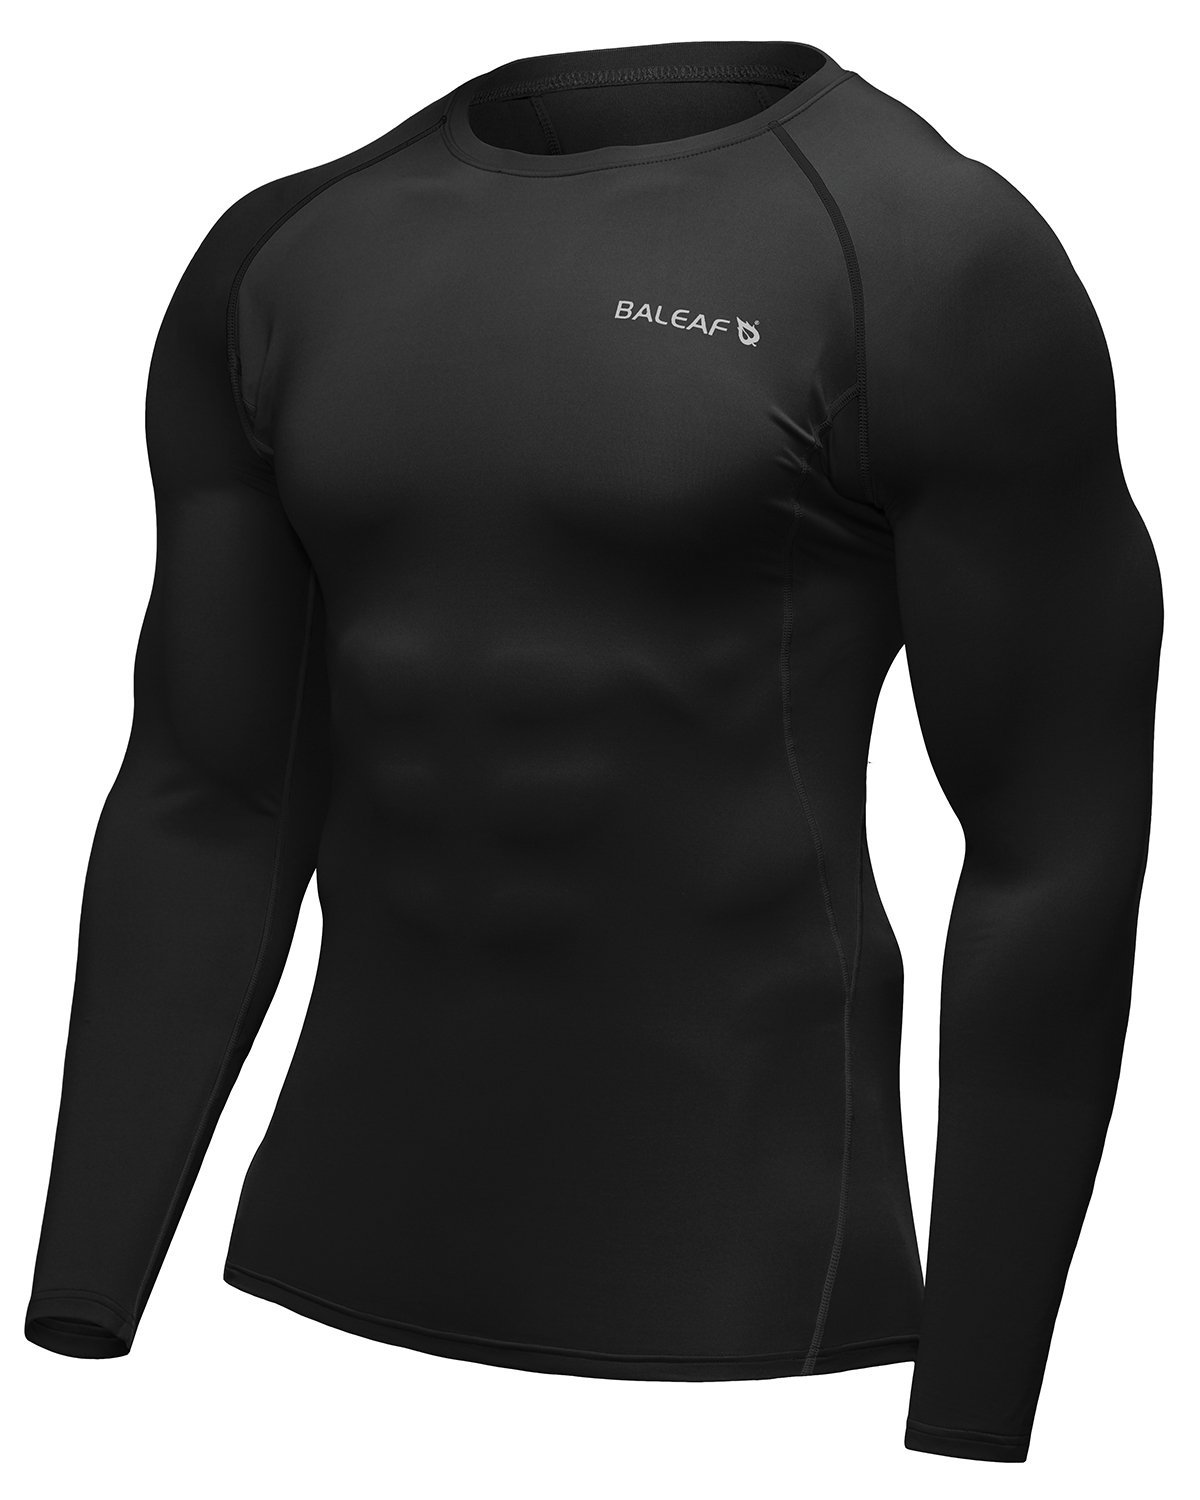 Long Sleeve Compression Shirt for men